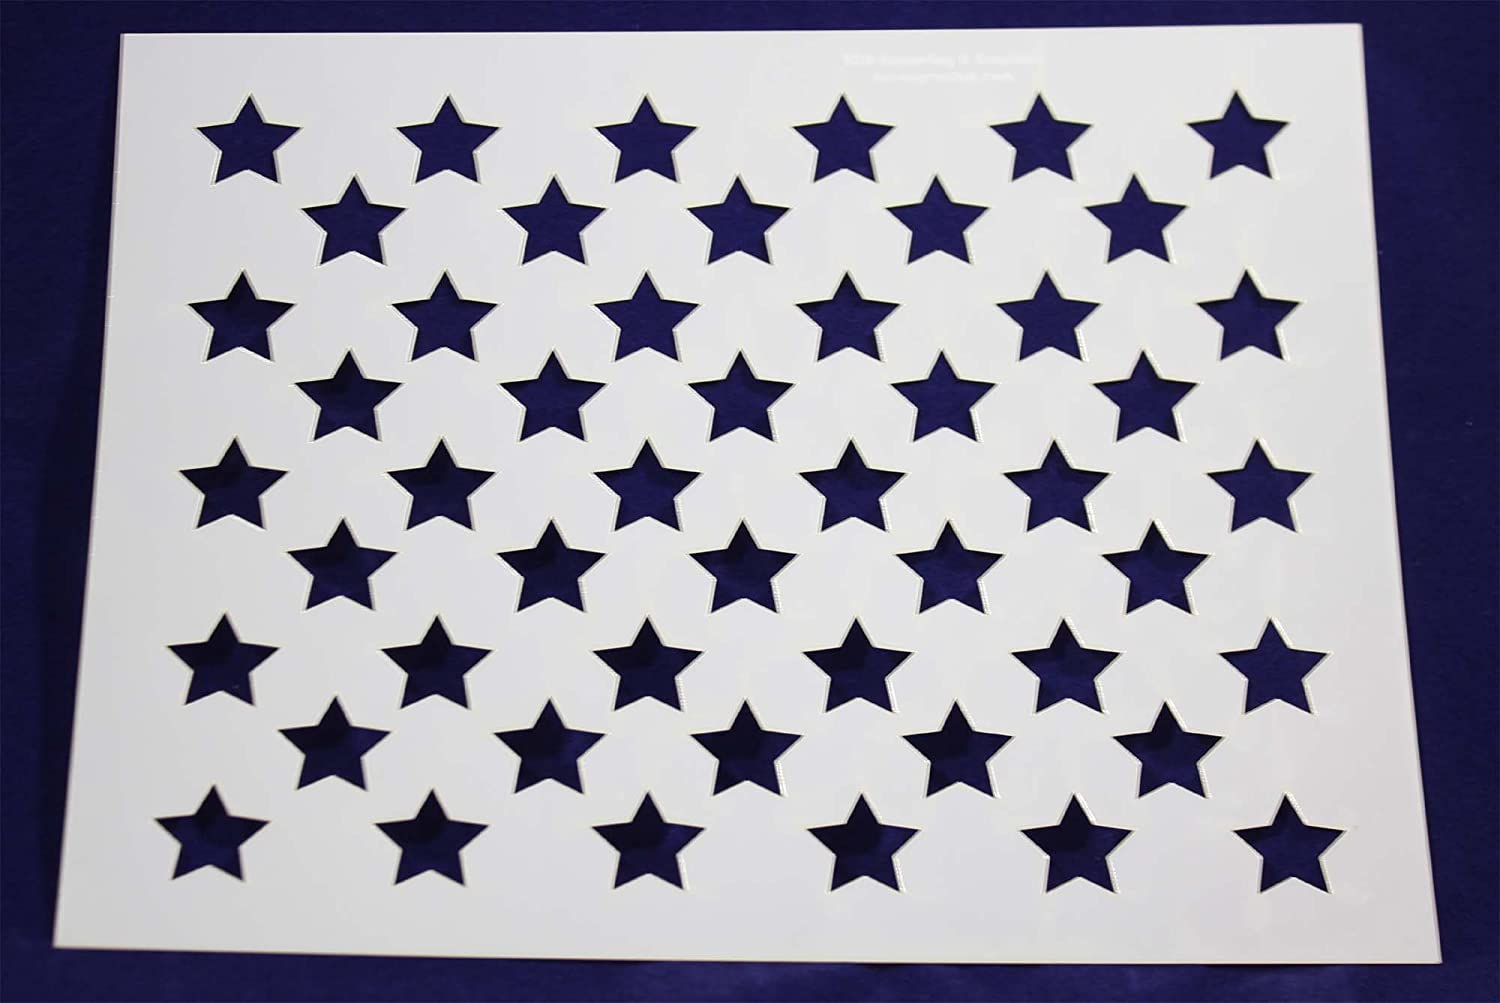 Amazon 50 star field stencil 14 mil 176h x 22w painting amazon 50 star field stencil 14 mil 176h x 22w painting crafts templates amipublicfo Choice Image